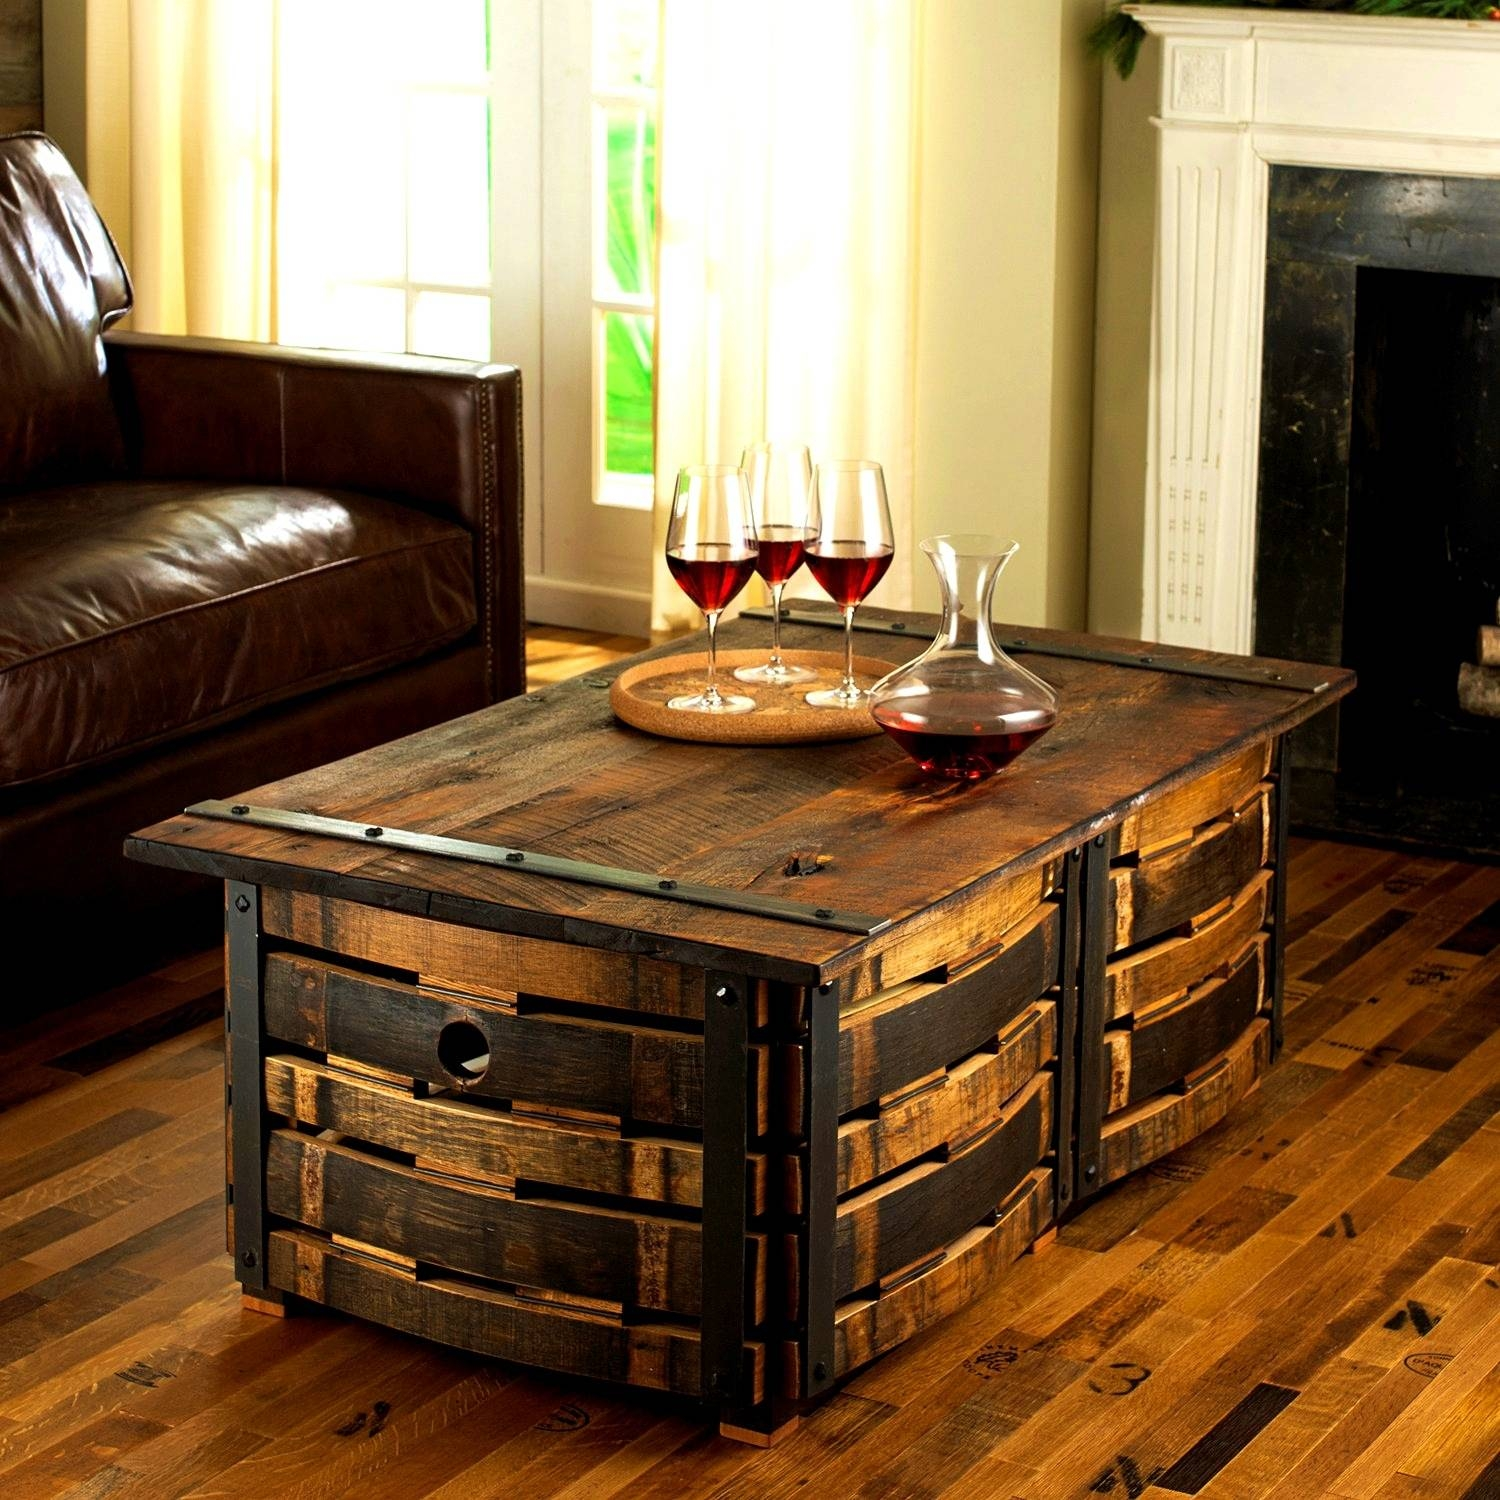 Coffee Table With Baskets Underneath / Coffee Tables / Thippo for Coffee Tables With Baskets Underneath (Image 8 of 30)